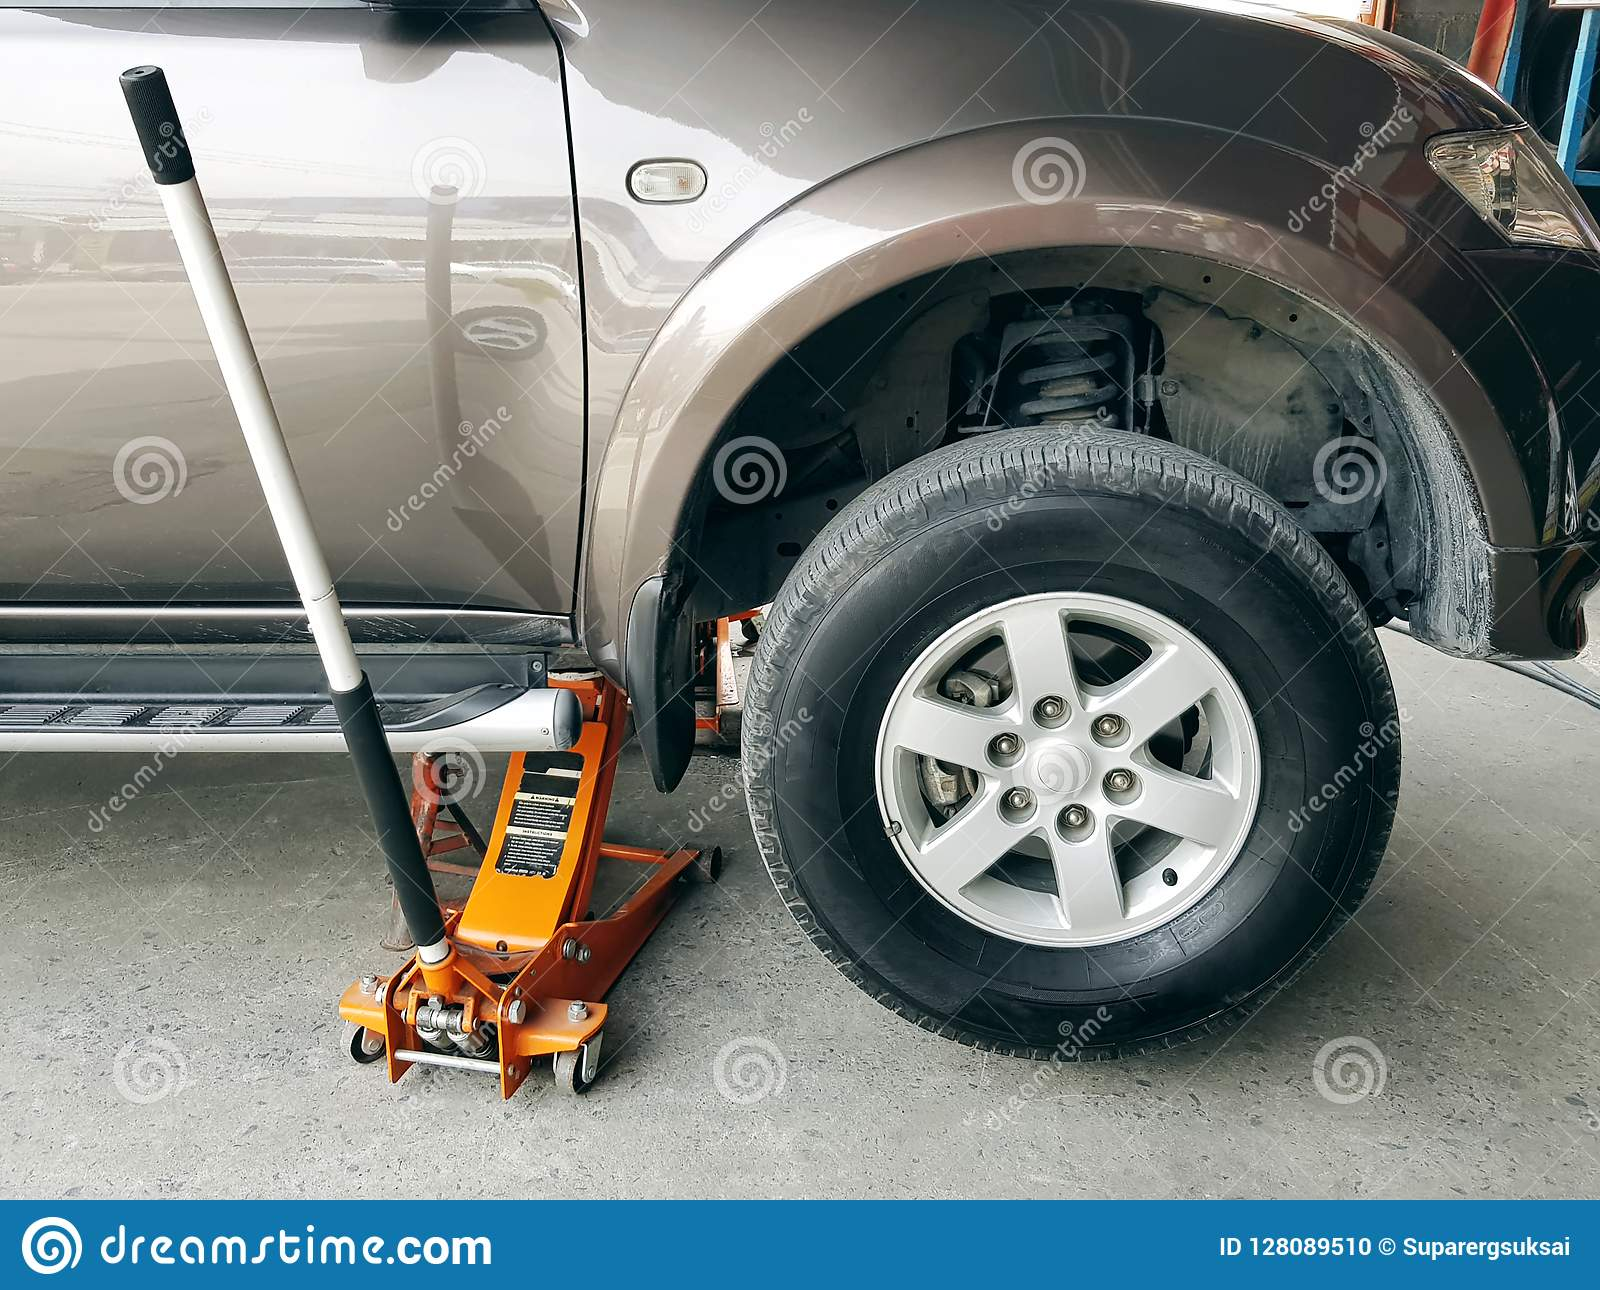 SUV Car Repair, Front Wheel Tyre Changing Stock Photo - Image of